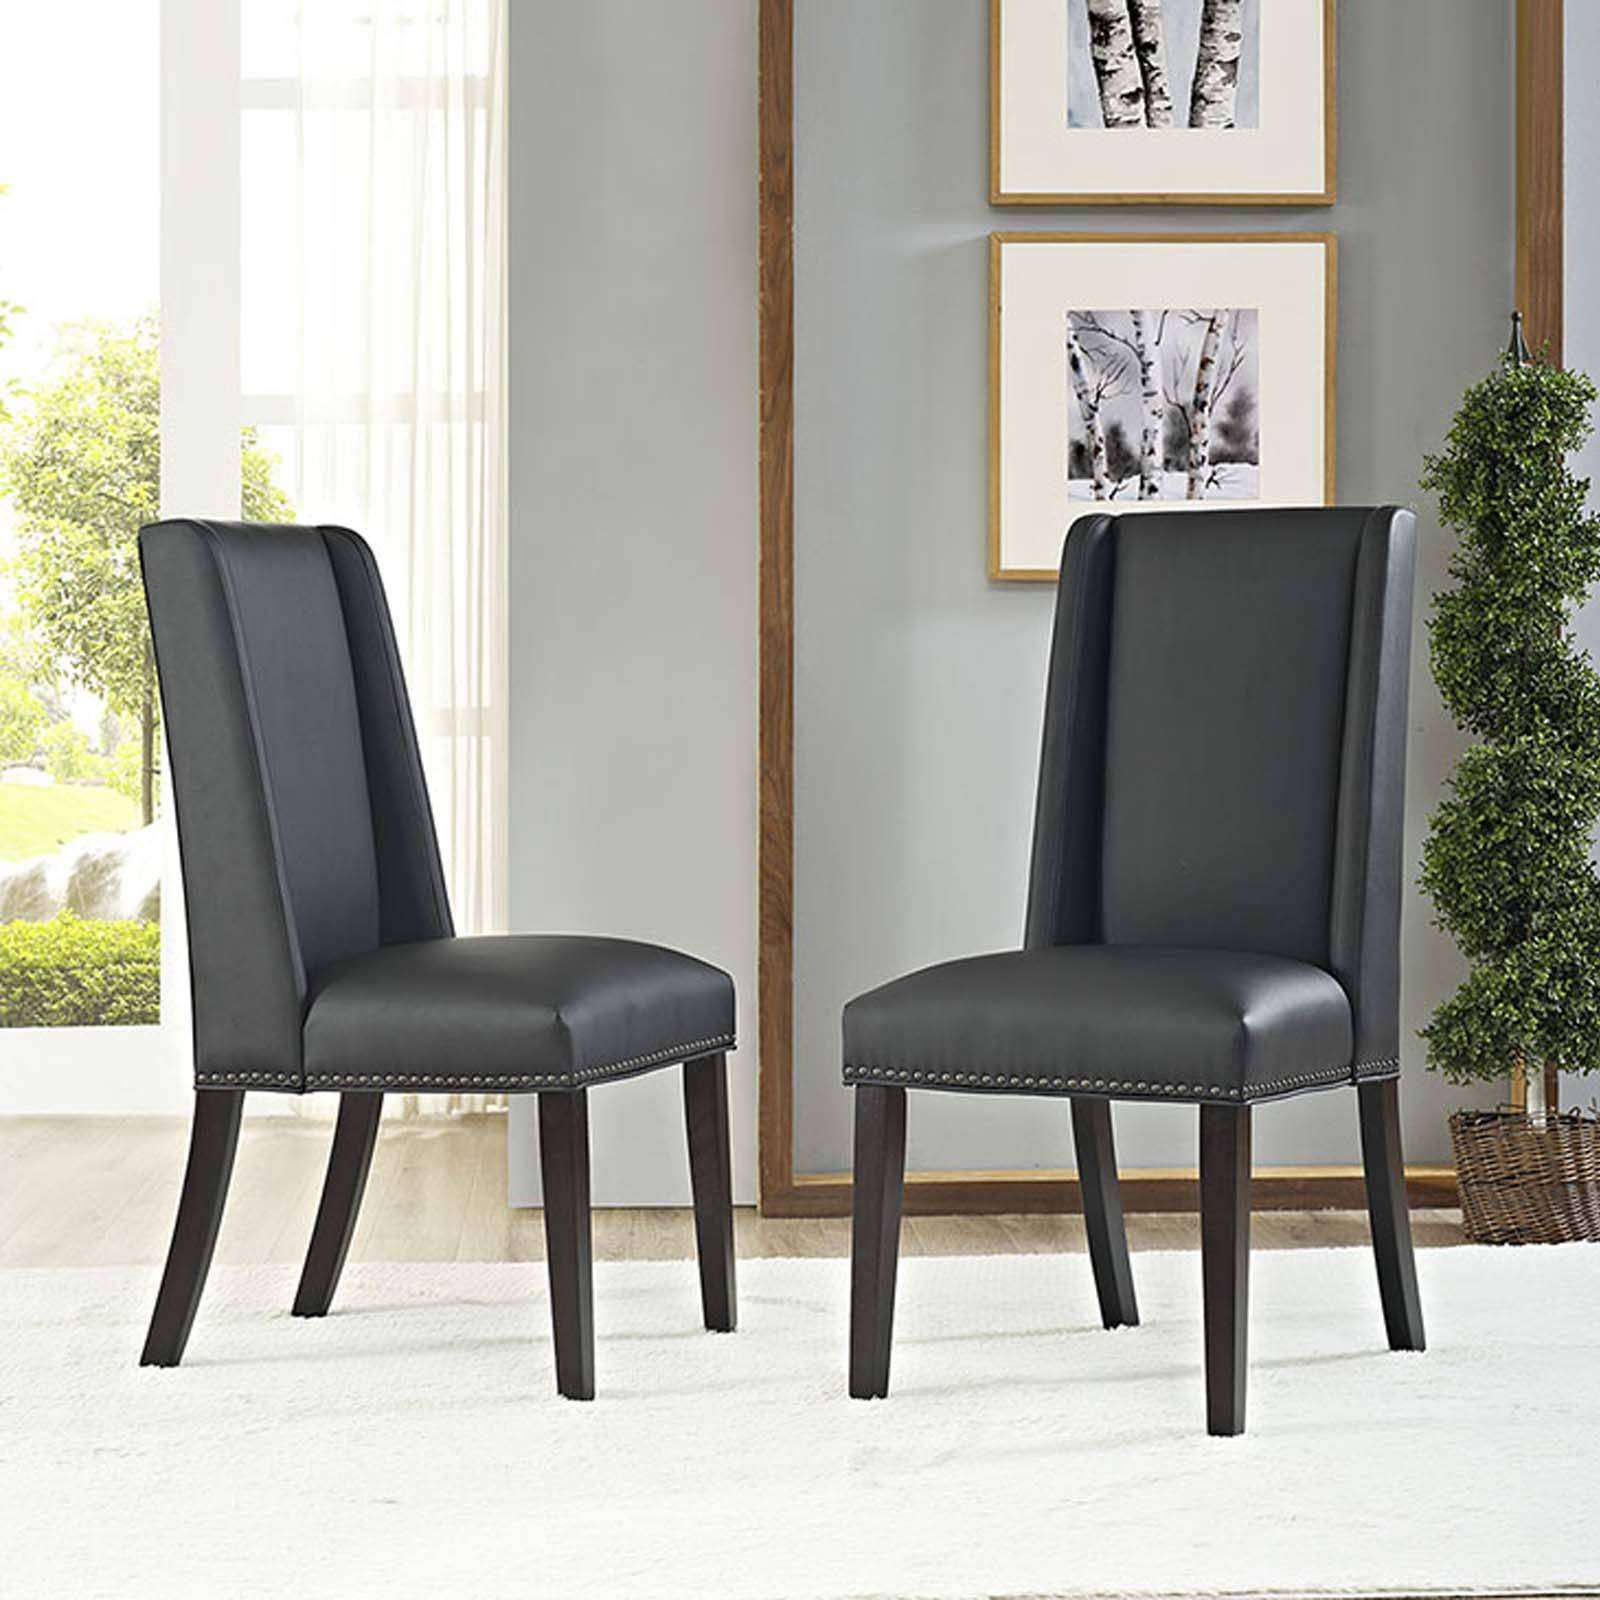 Modterior Dining Room Dining Chairs Baron Vinyl